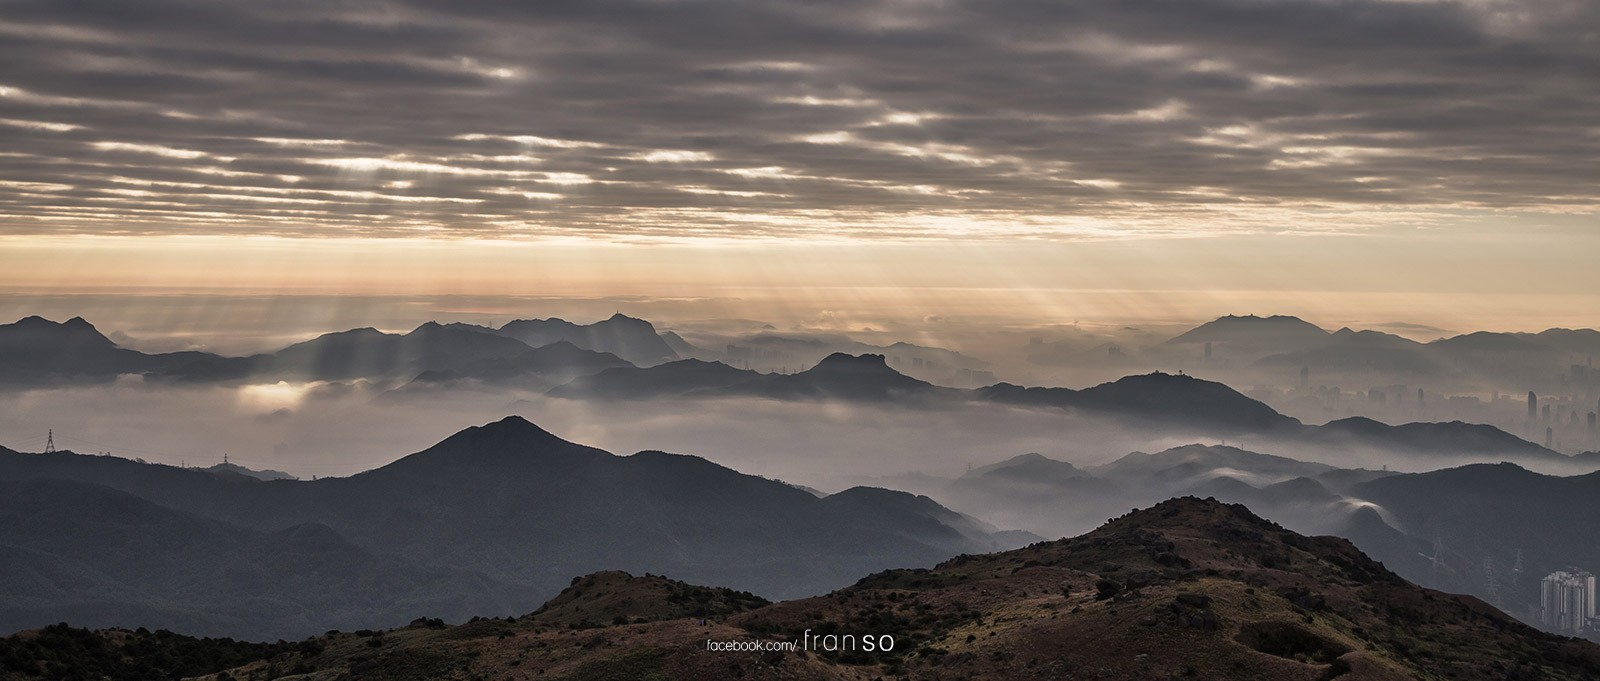 Landscape | Hong Kong | Spectacular | Cloud of sea, crepuscular rays and the Kowloon's mountains. This is one of the most spectacular views from Tai Mo Shan.